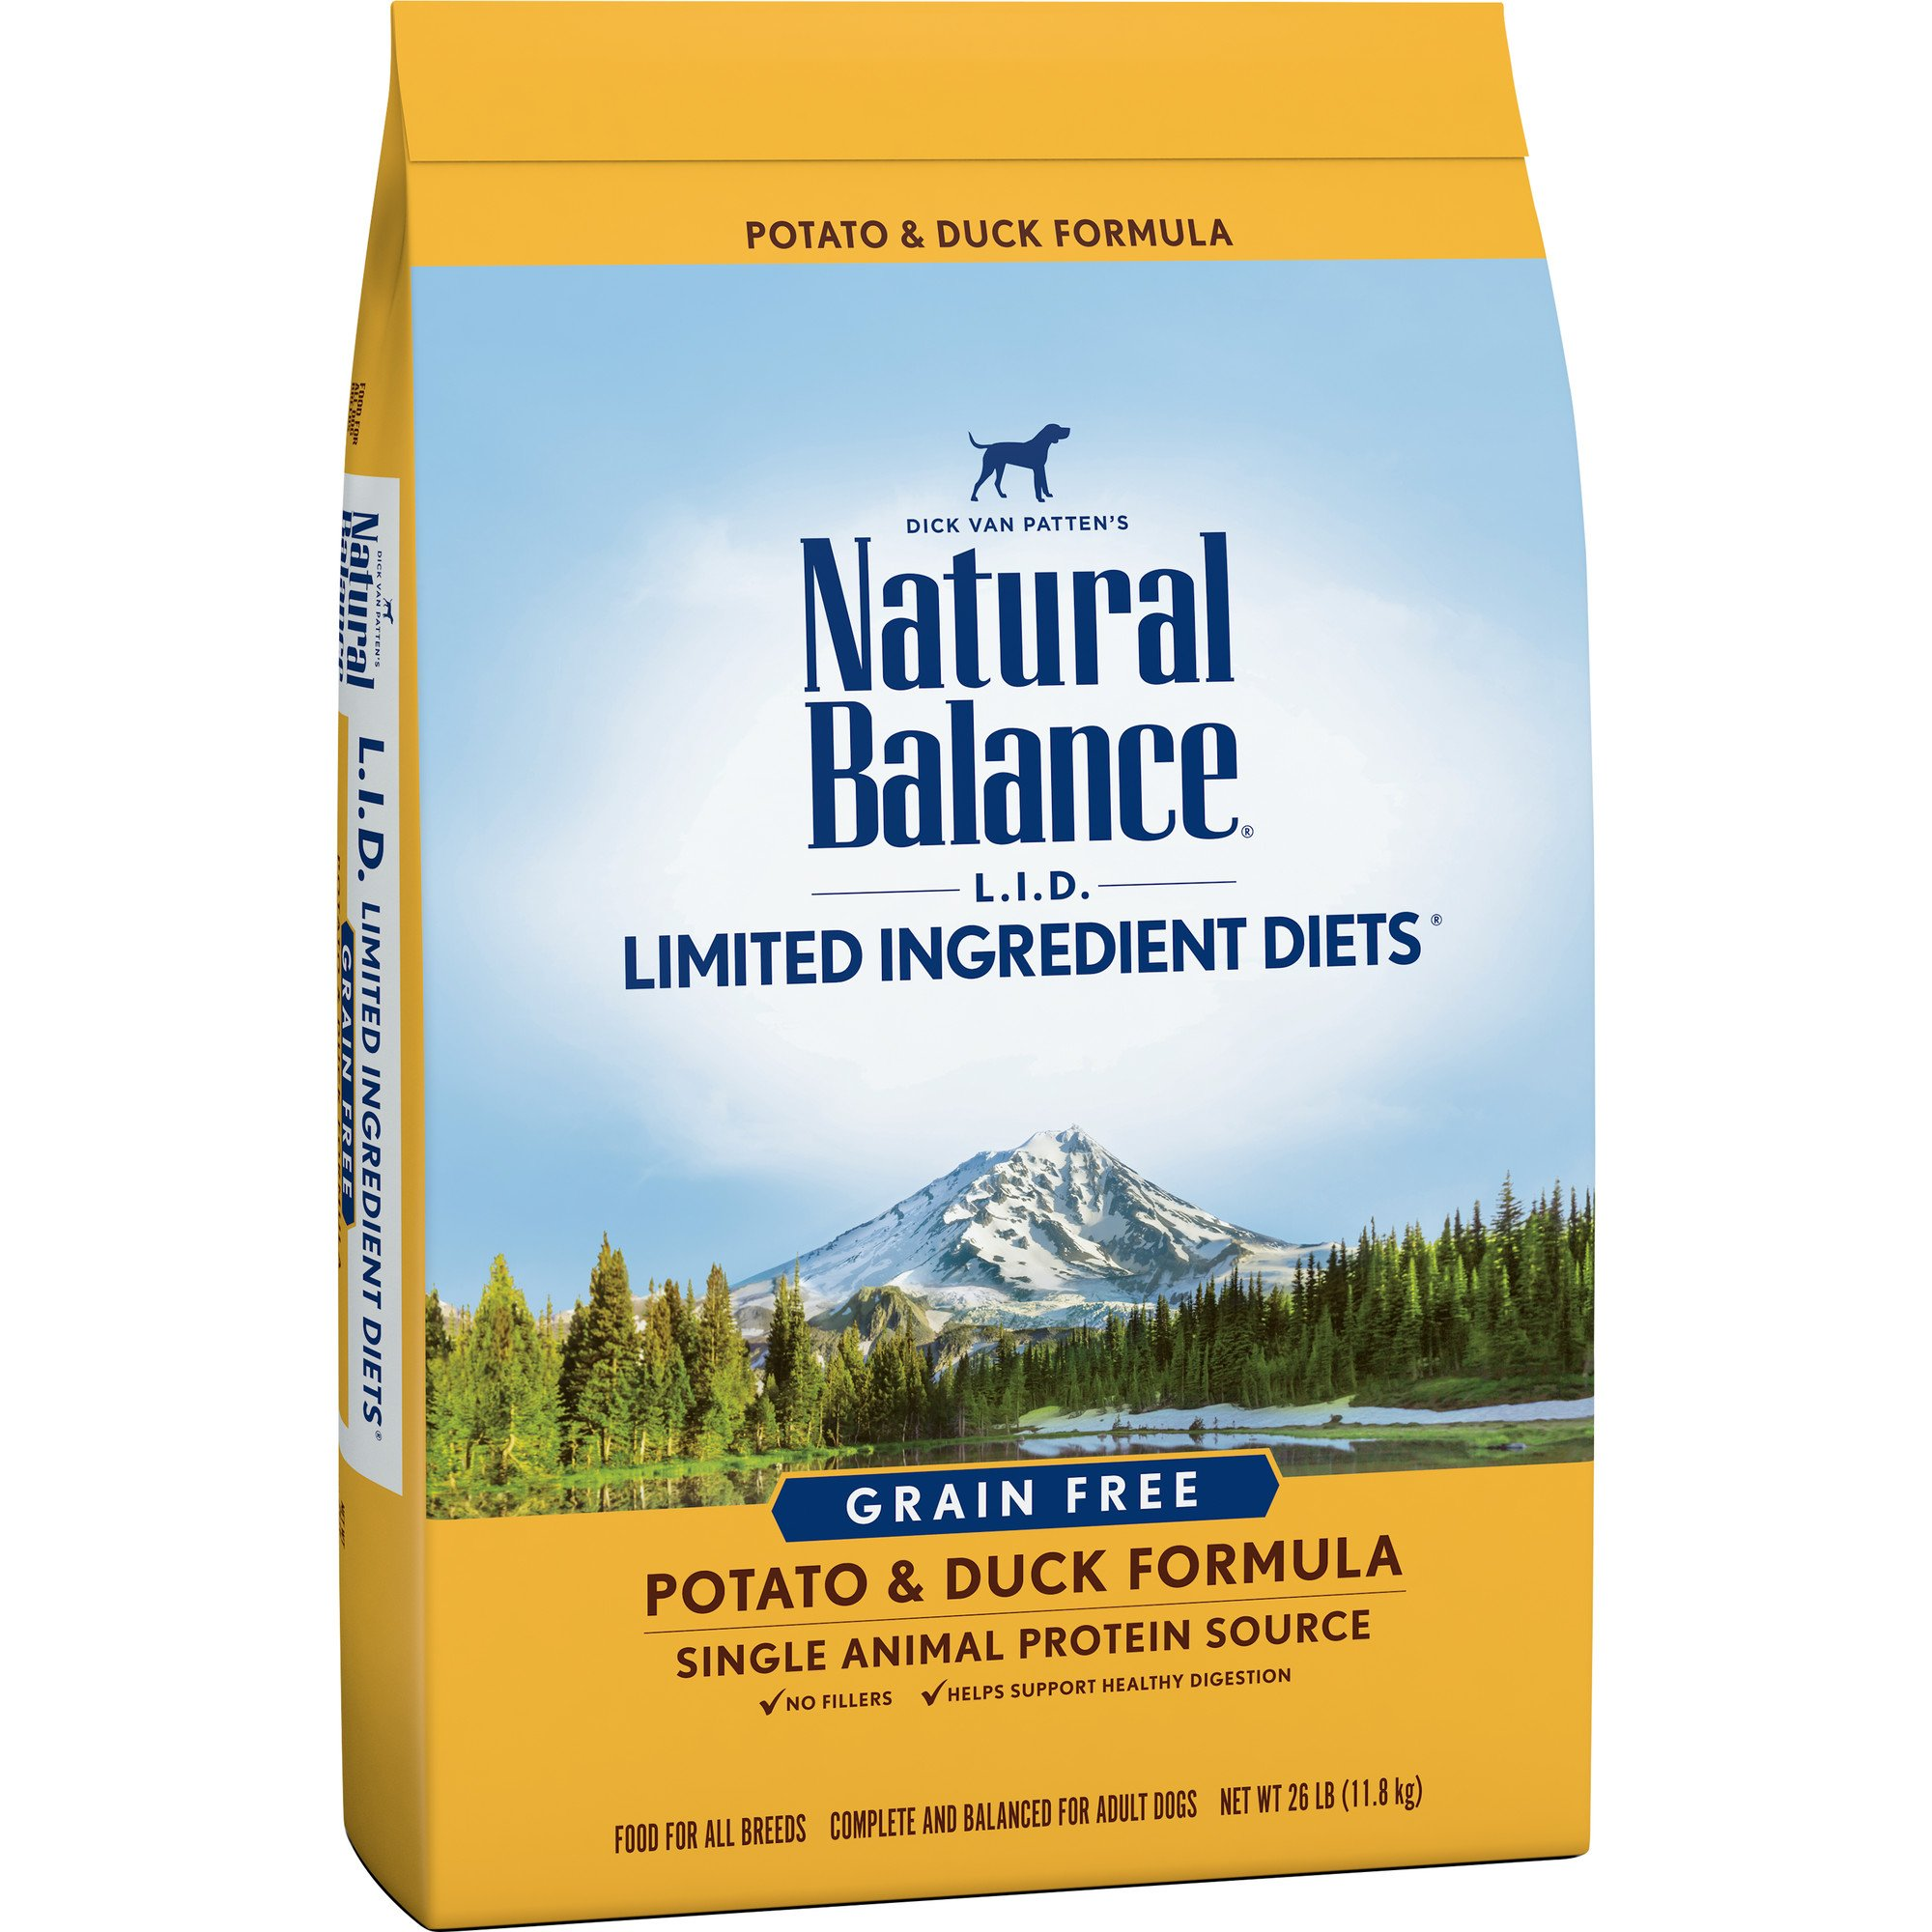 Natural Balance Limited Ingredient Diets Potato & Duck Formula Dry Dog Food, 26 Pounds, Grain Free by Natural Balance